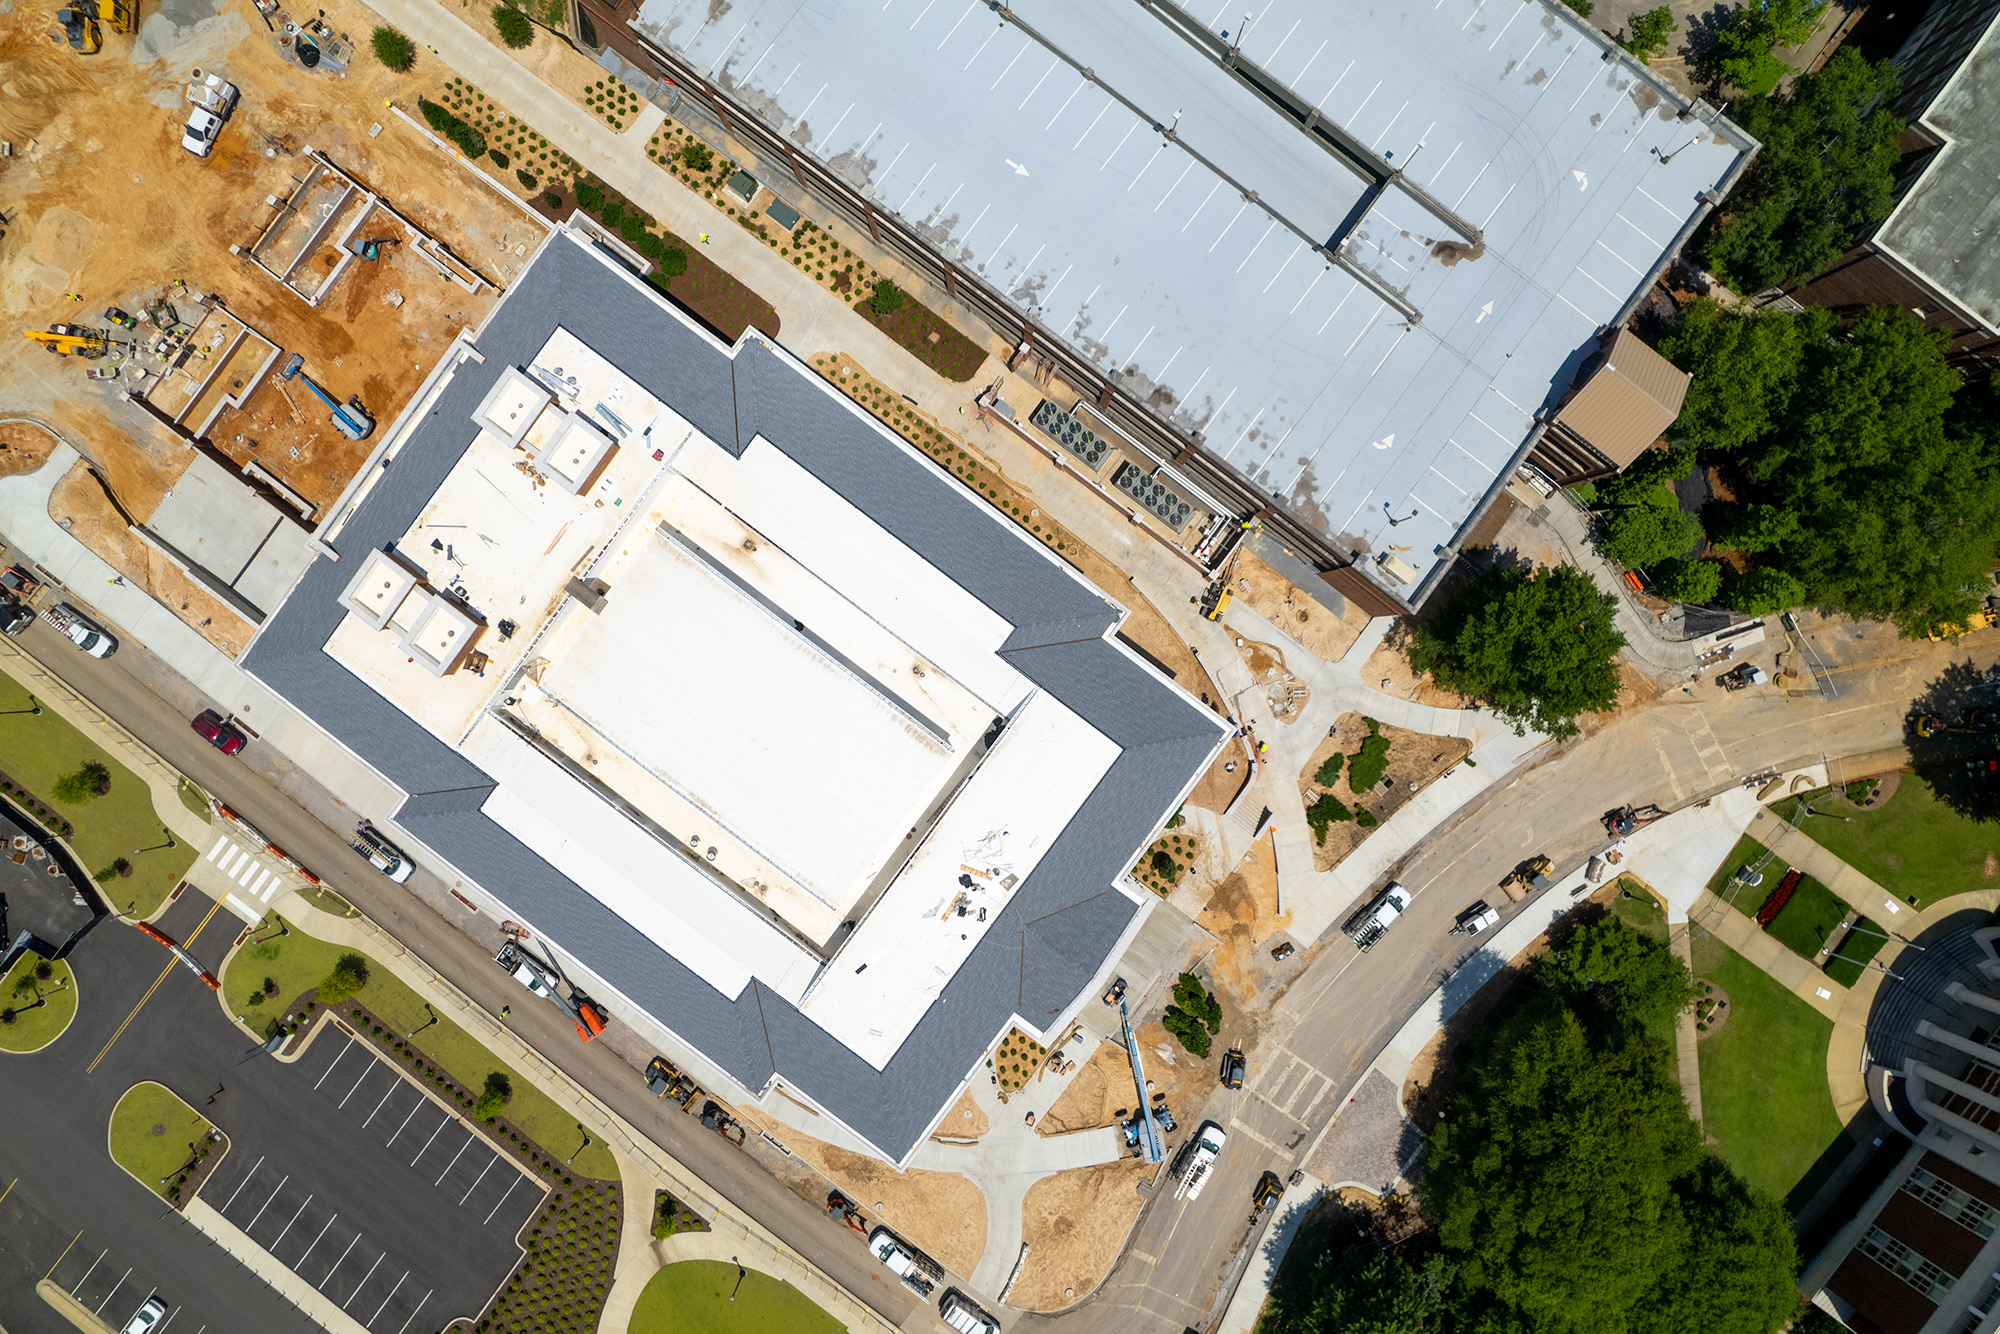 aerial view of Hewson Hall at The University of Alabama campus